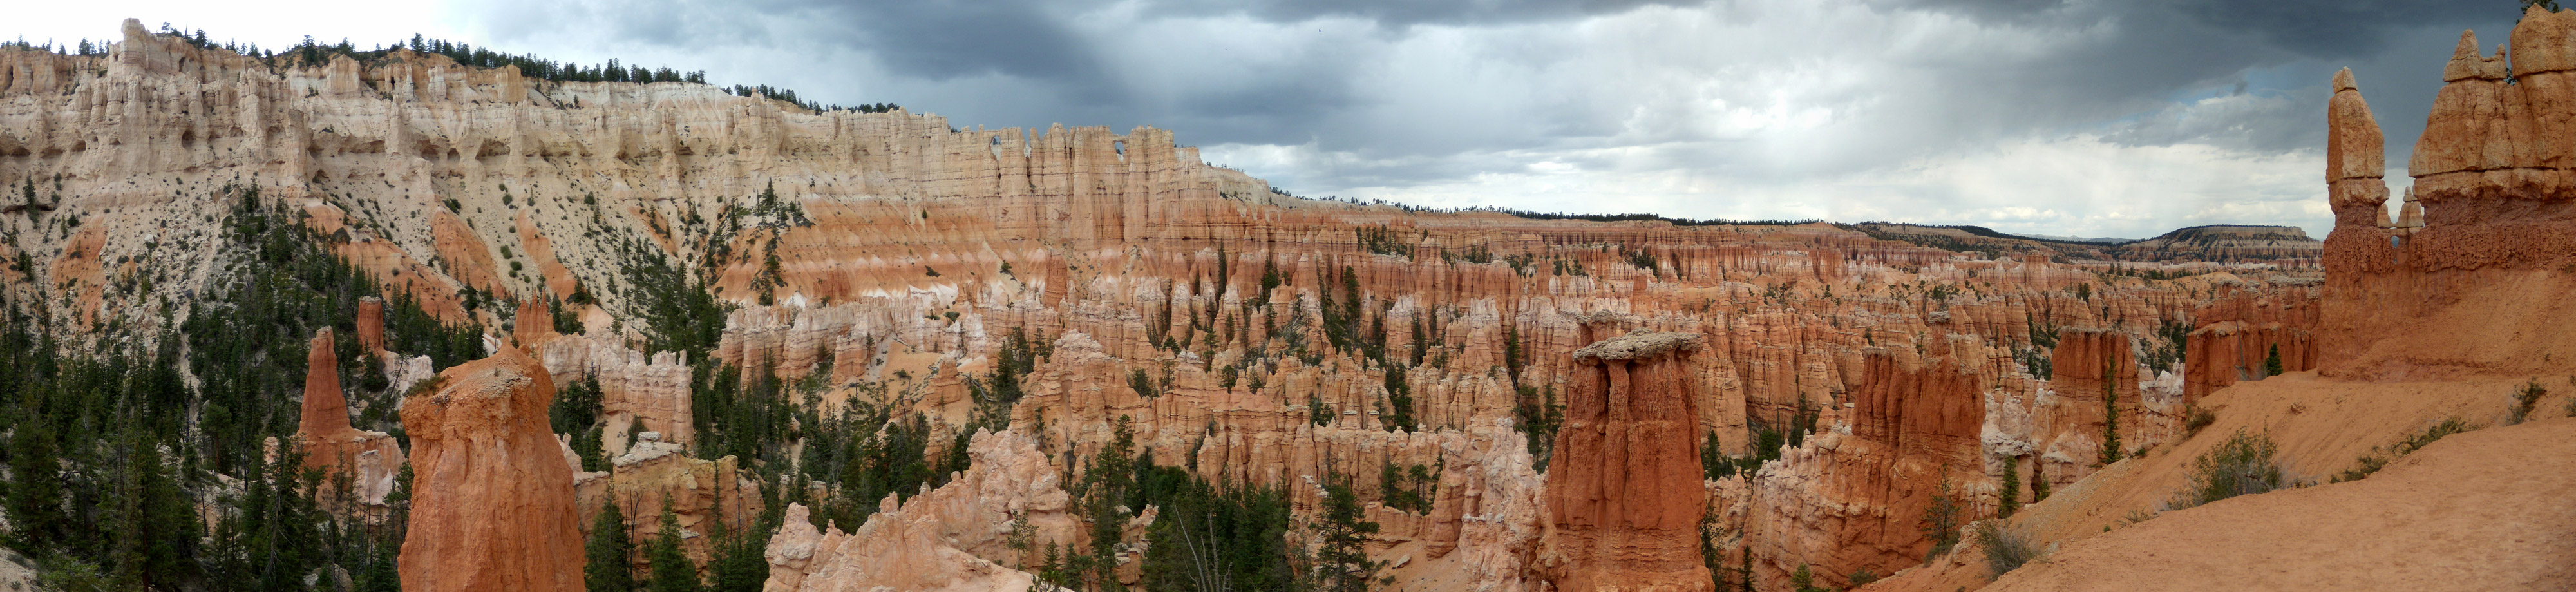 bryce-pano